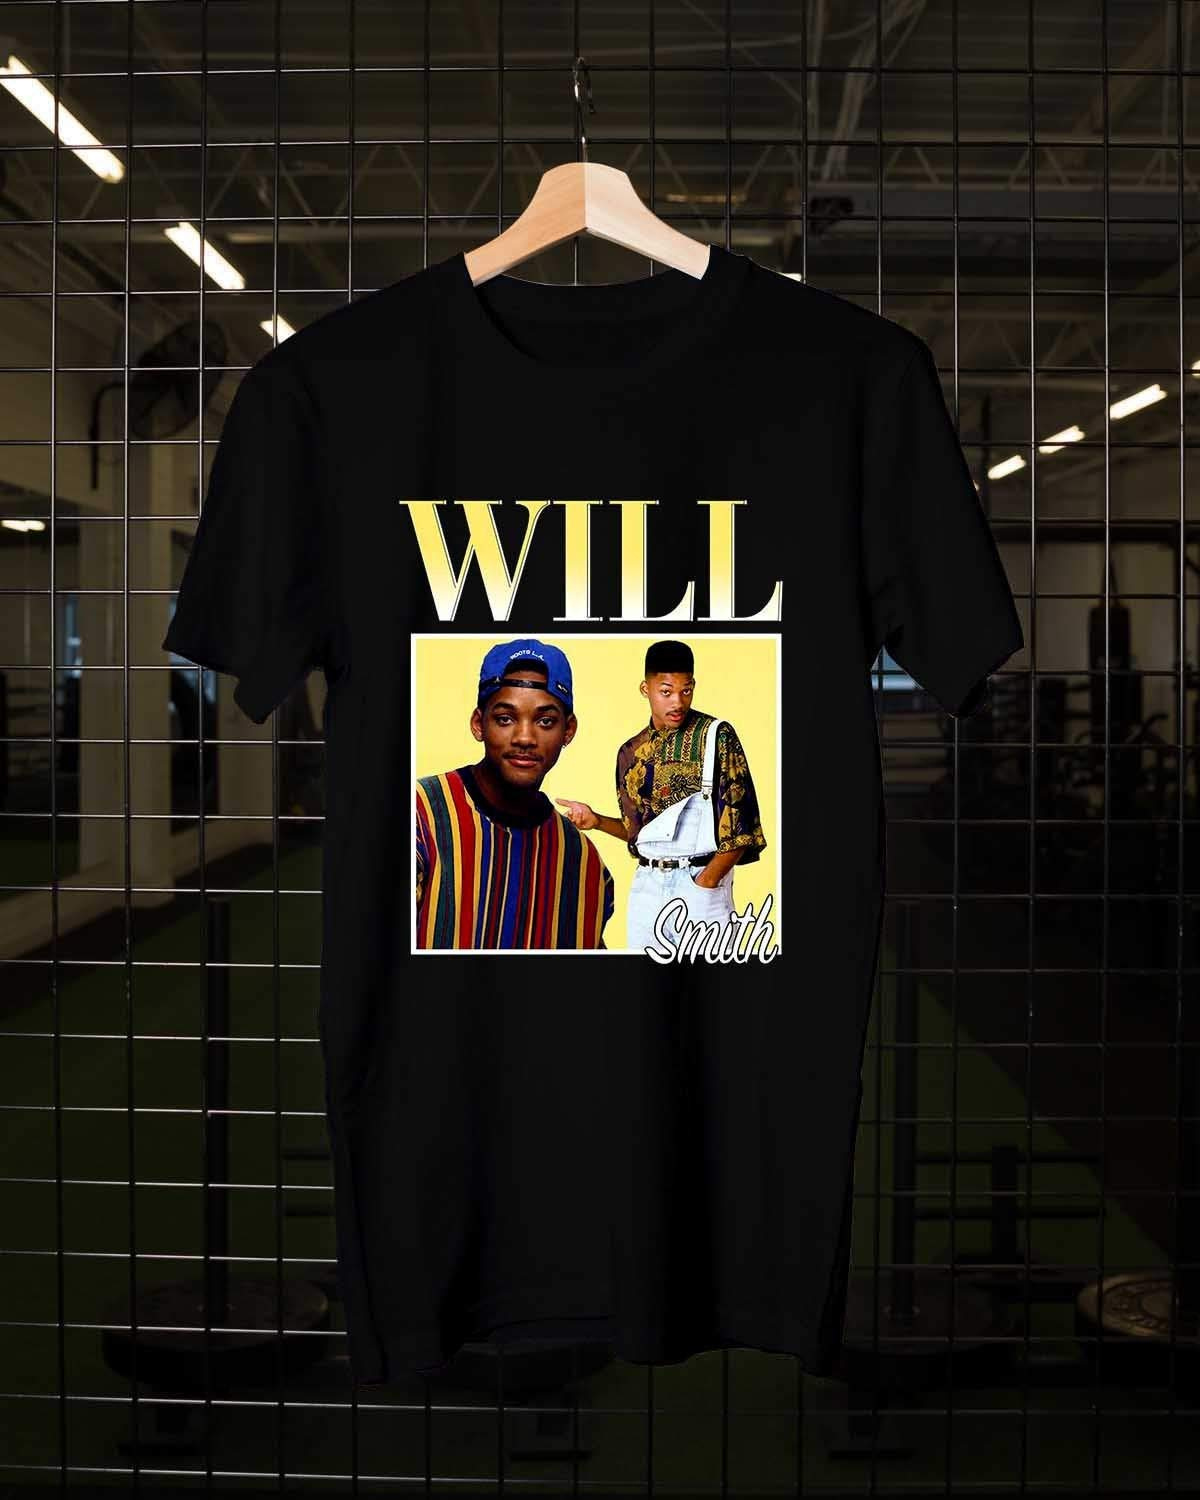 Will Smith The Fresh Prince of Bel Air, Actor, T Shirt, Unisex Adult Clothing Size S-3XL